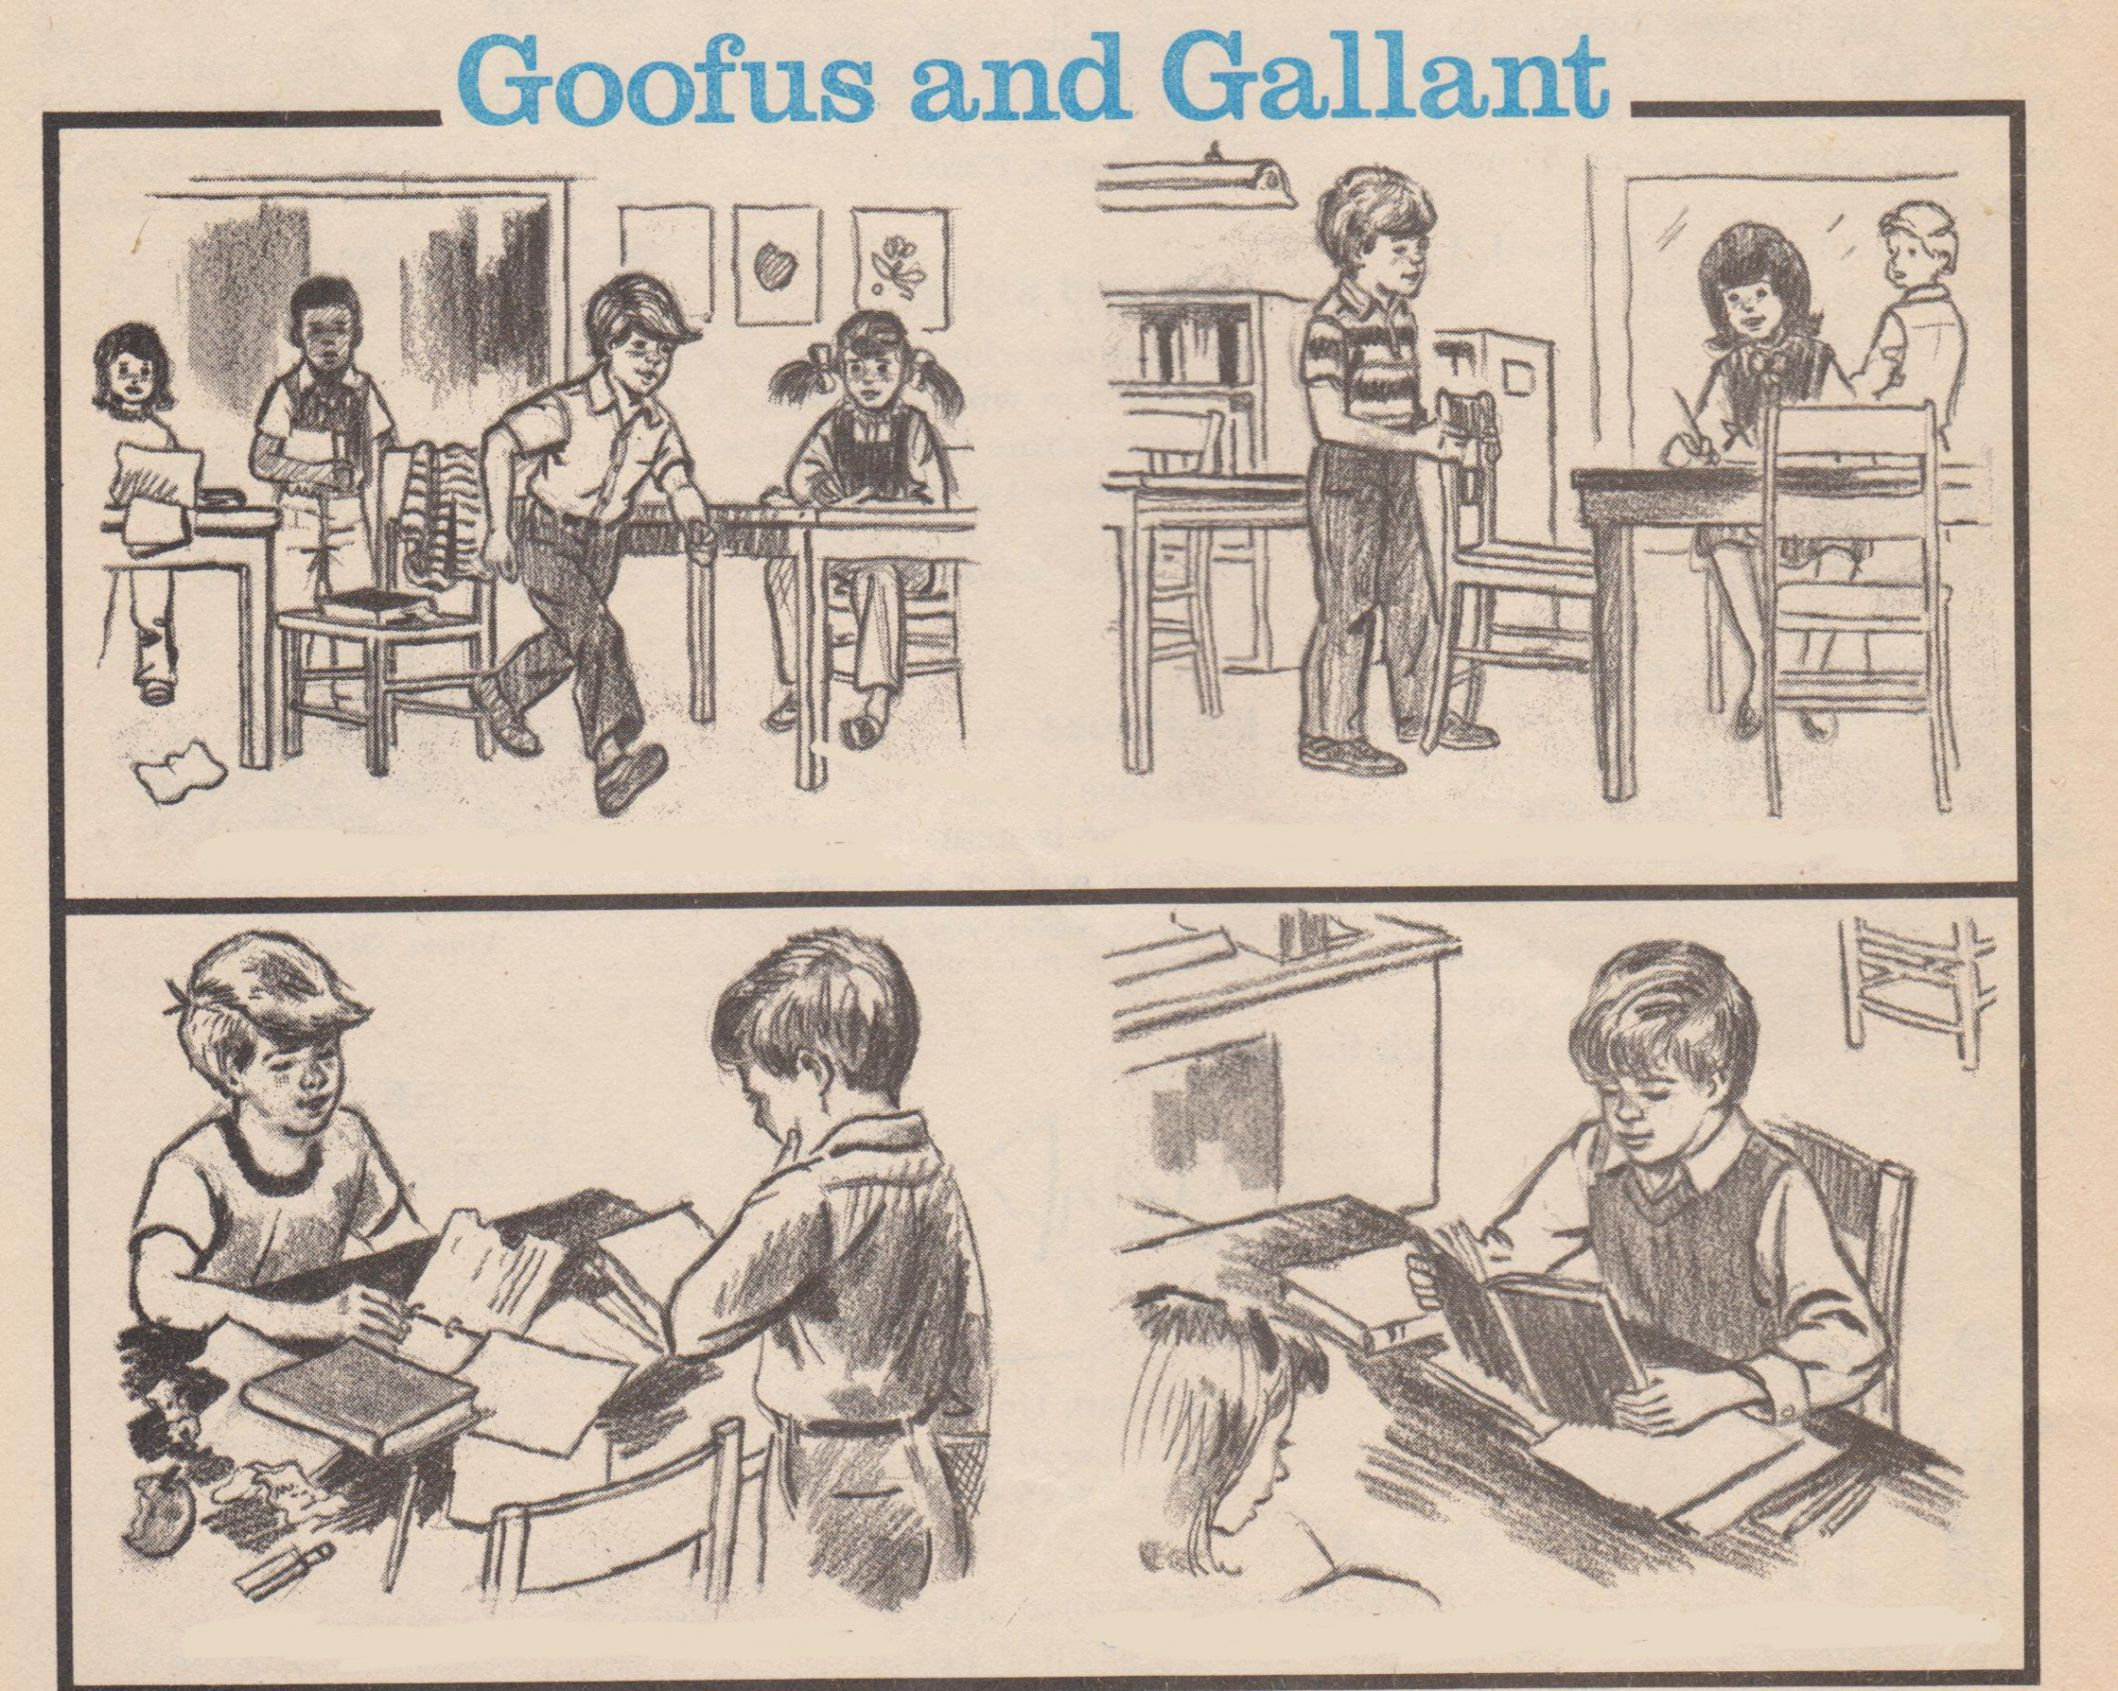 16m0d1 goofus and gallant blank template imgflip